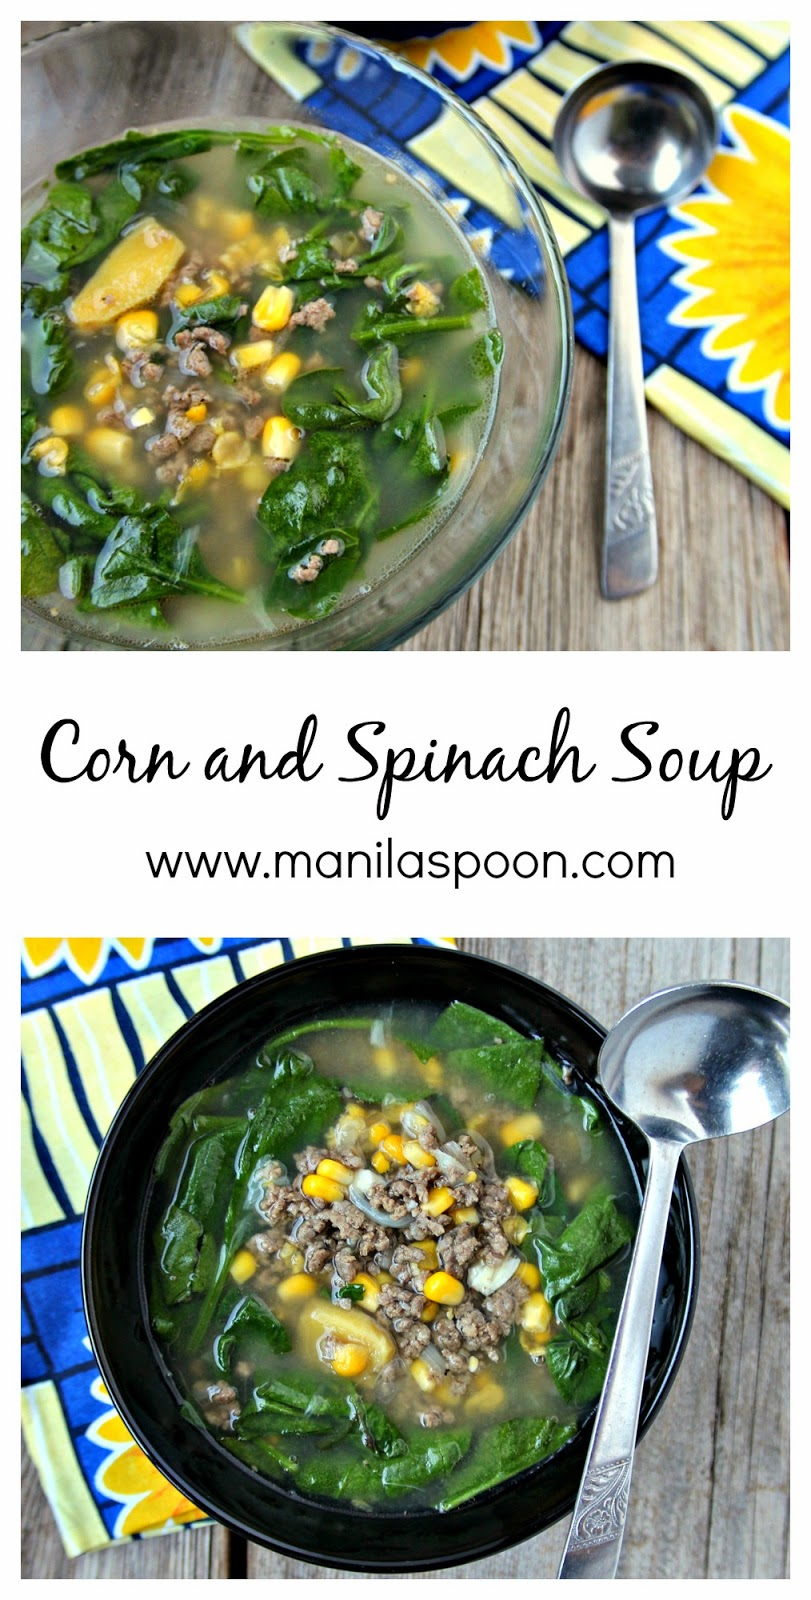 With corn, spinach and meat and flavored with ginger for extra zing, this simple soup is tasty, healthy and easy to make.